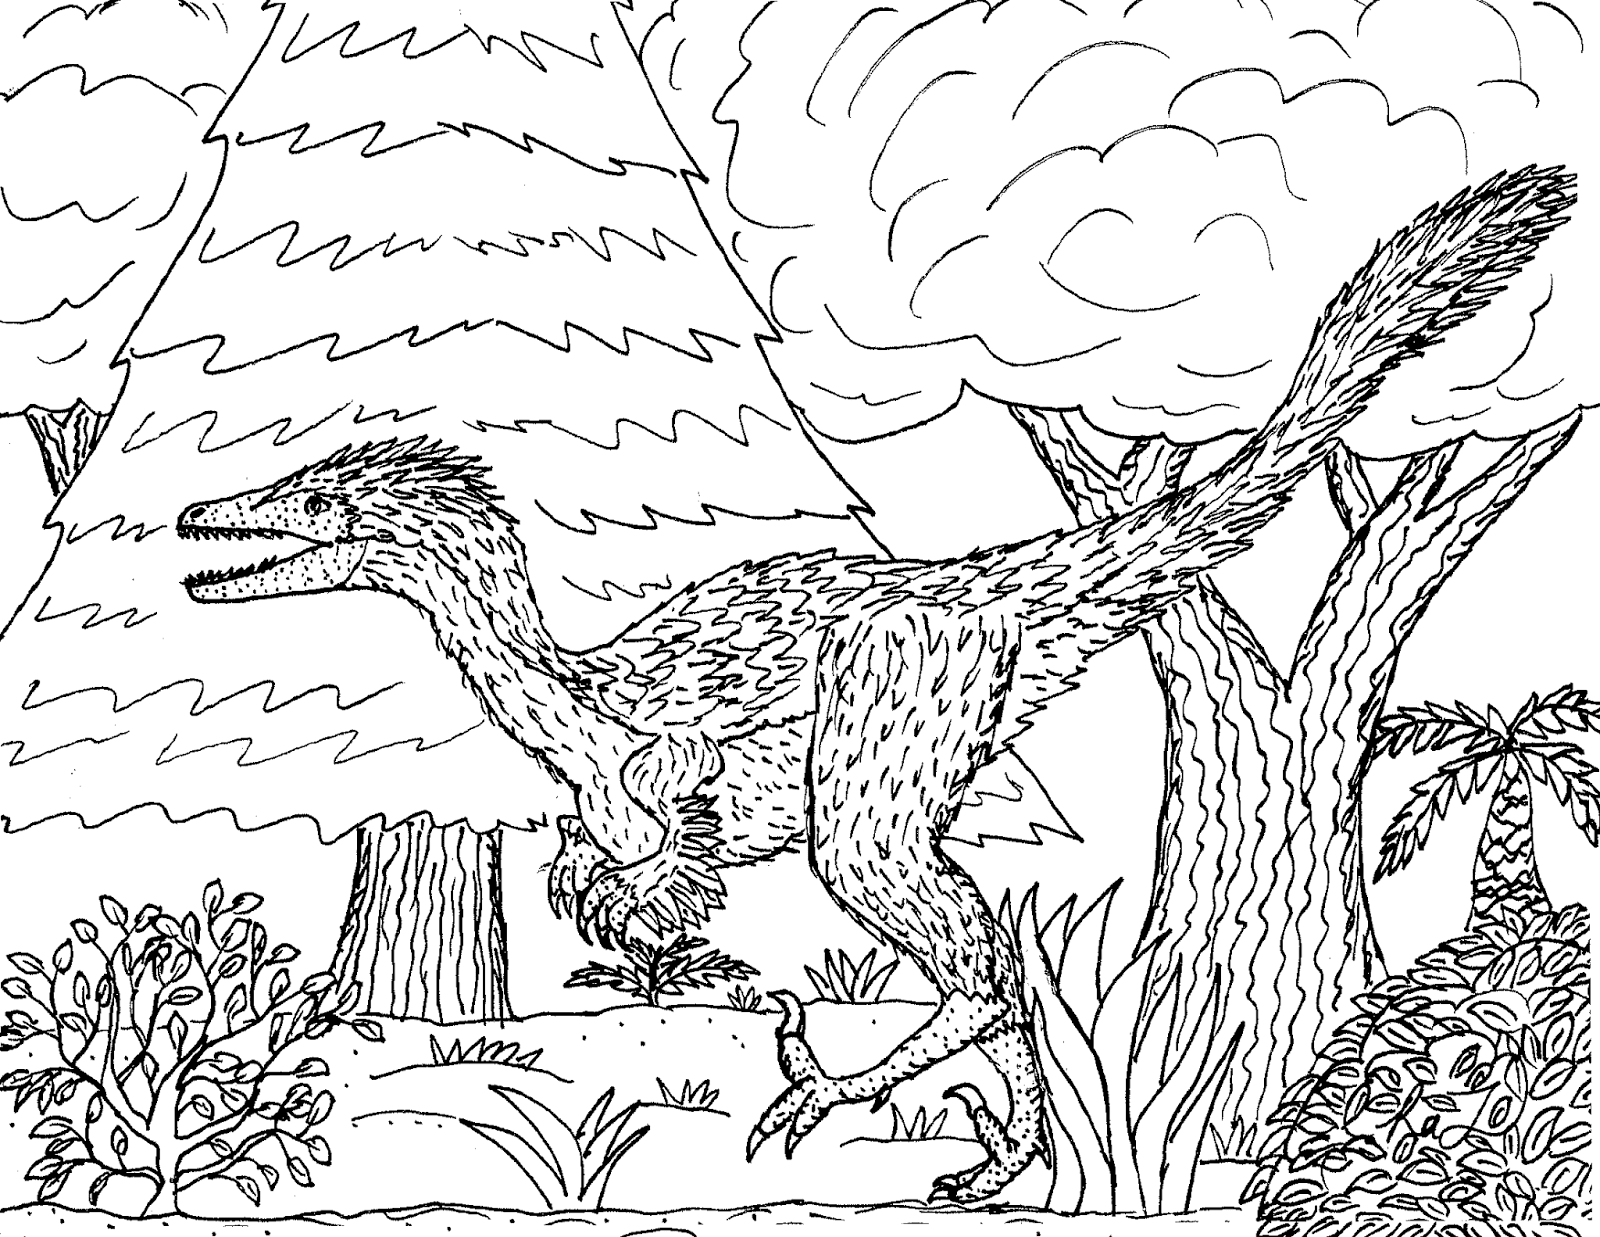 troodon coloring page learn how to draw a troodon dinosaurs step by step troodon coloring page